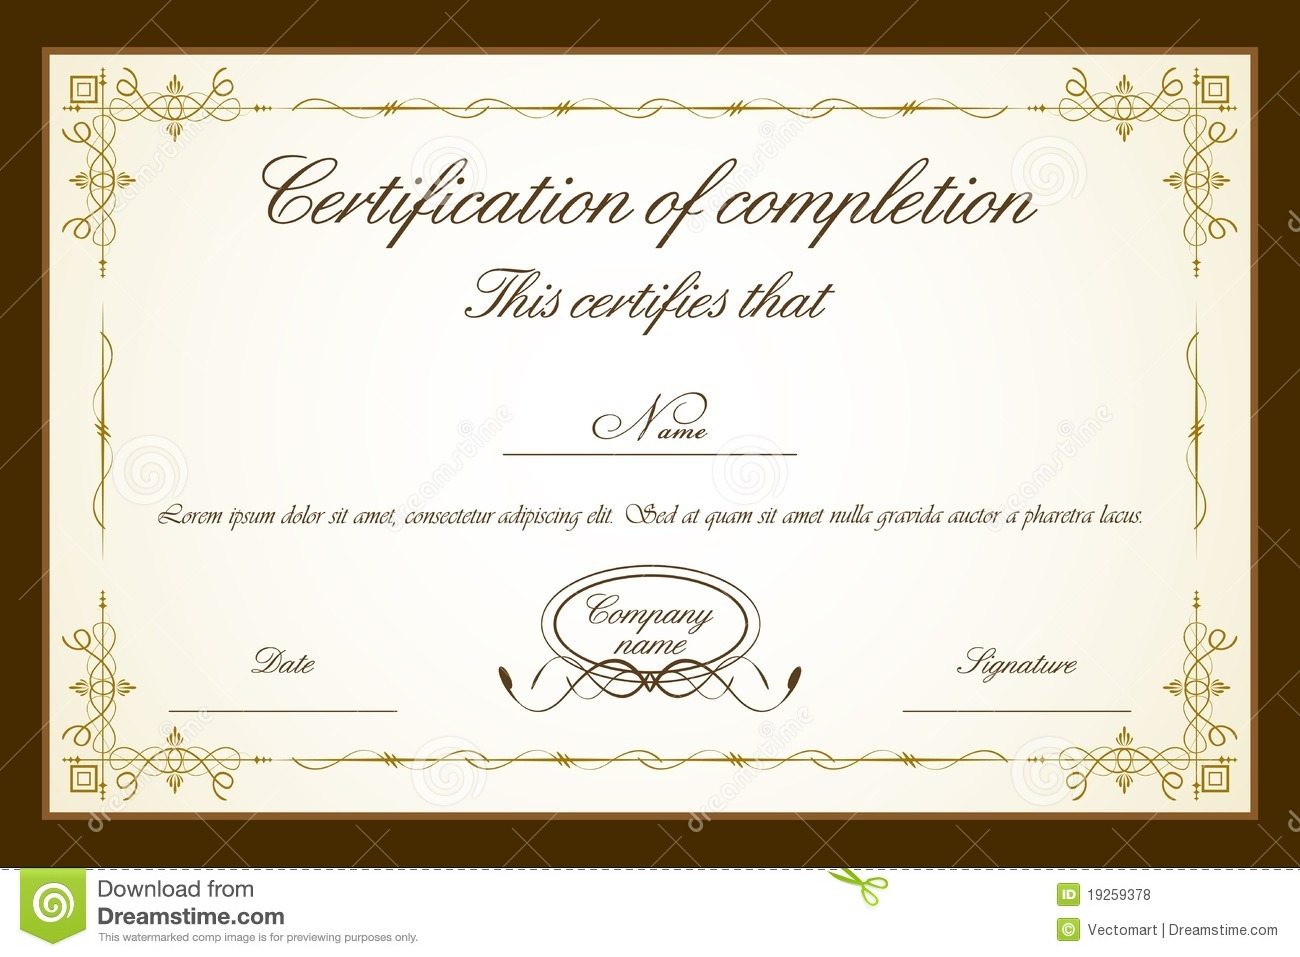 free word certificate borders templates .